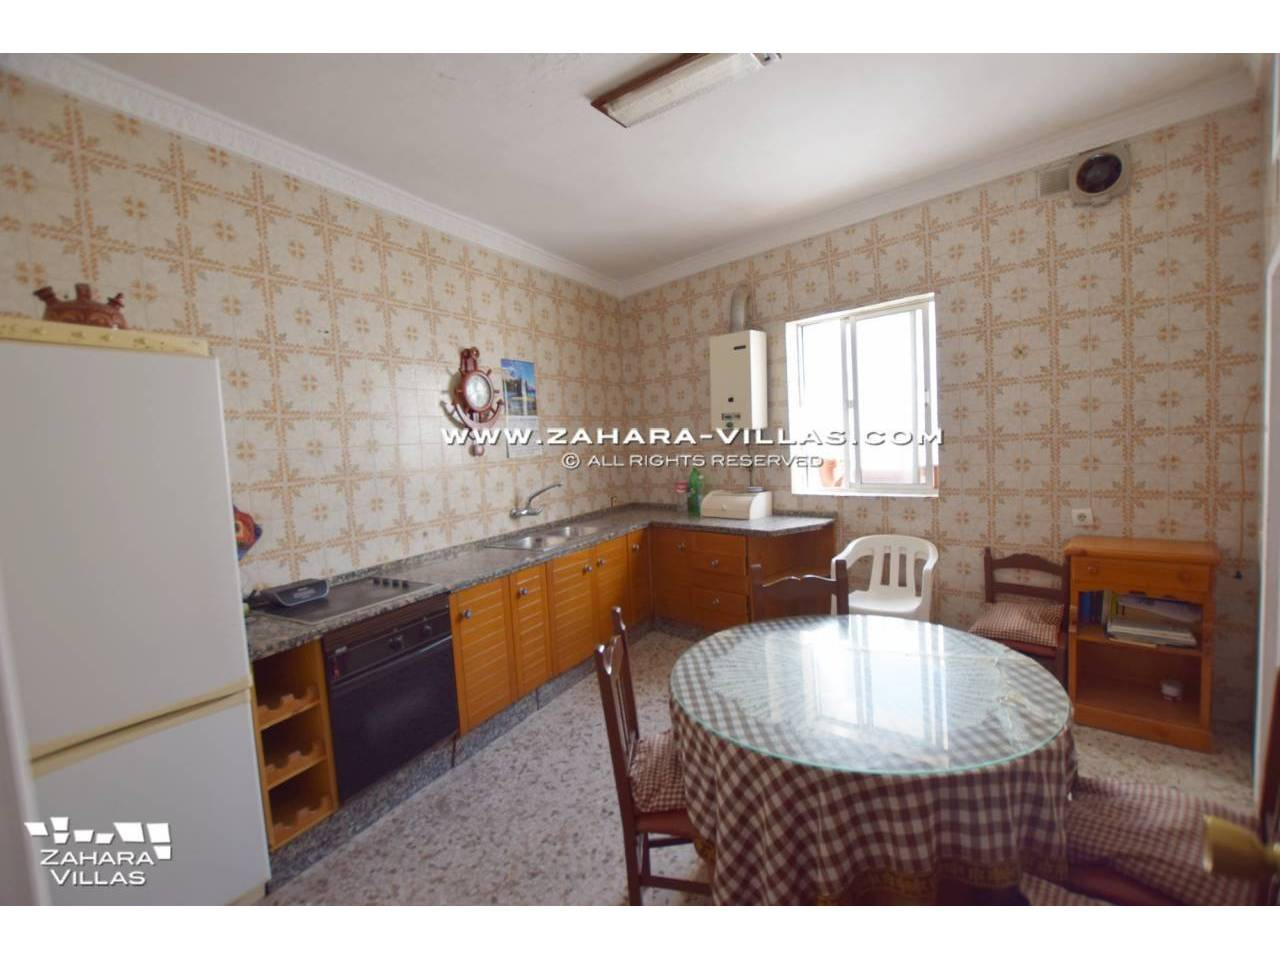 Imagen 3 de House for sale located in pedestrian street of Vejer de la Frontera